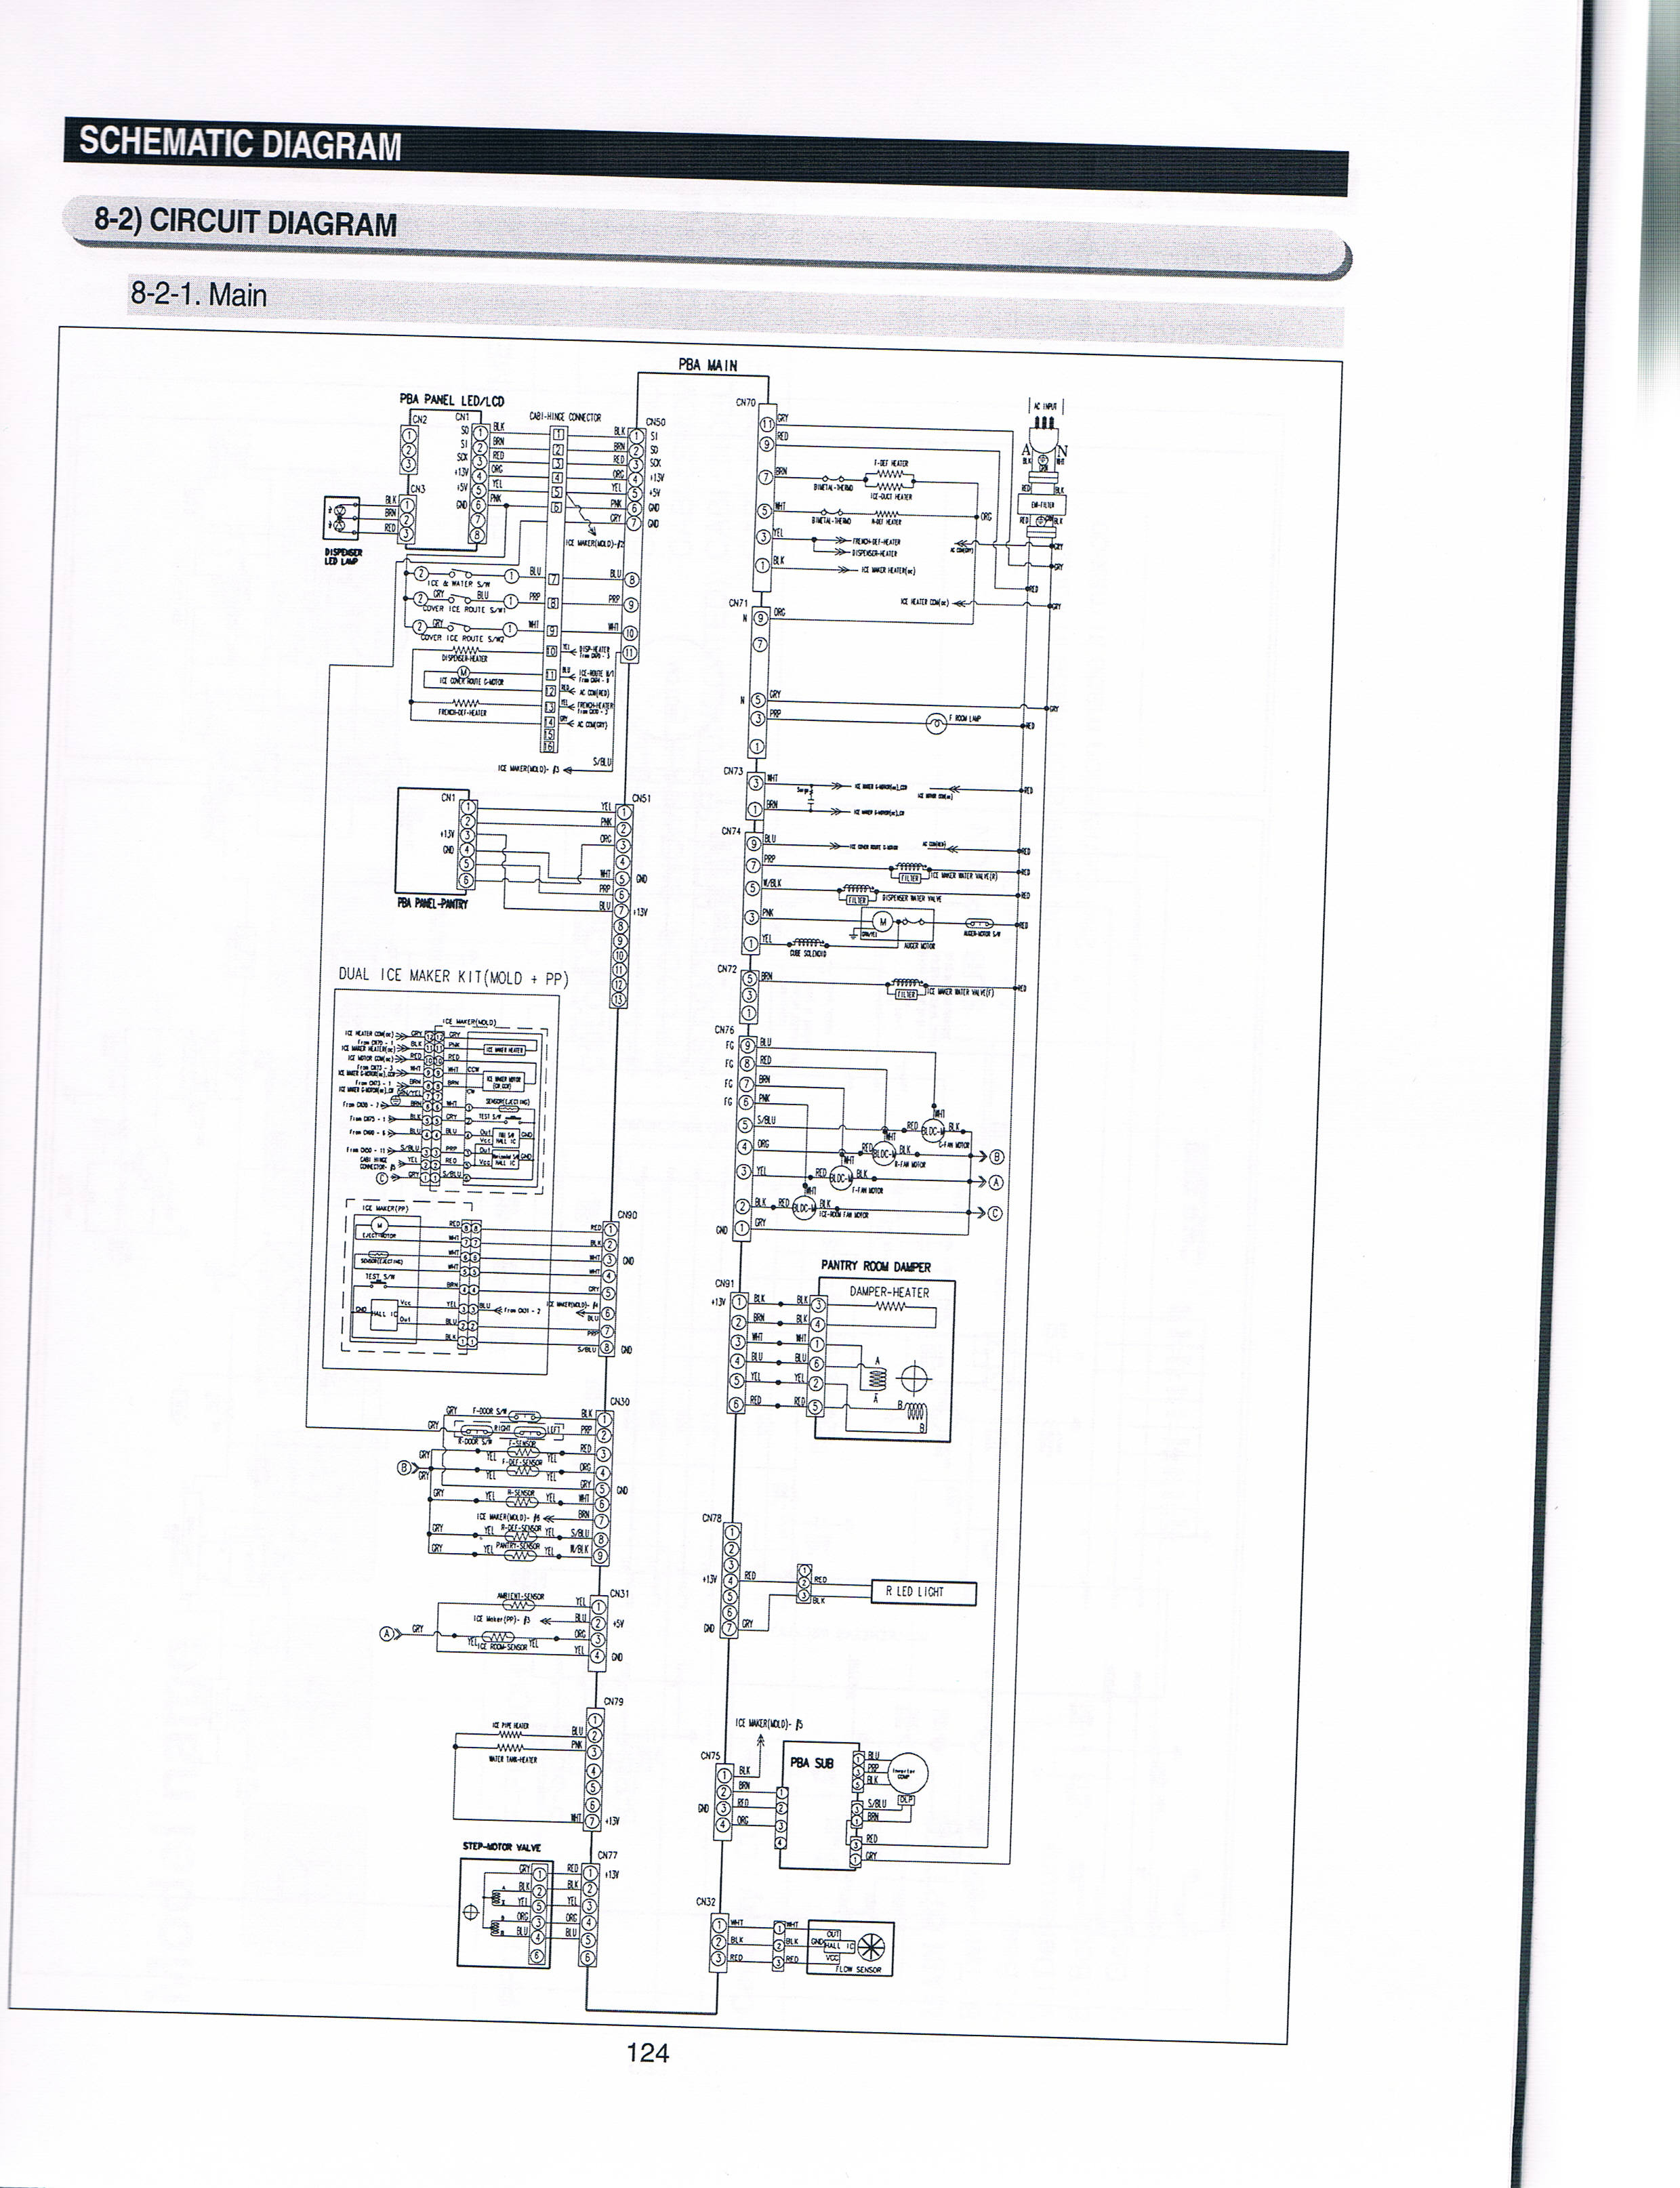 Idec Relay Wiring Diagram Free Picture Schematic - Wiring Diagrams ...